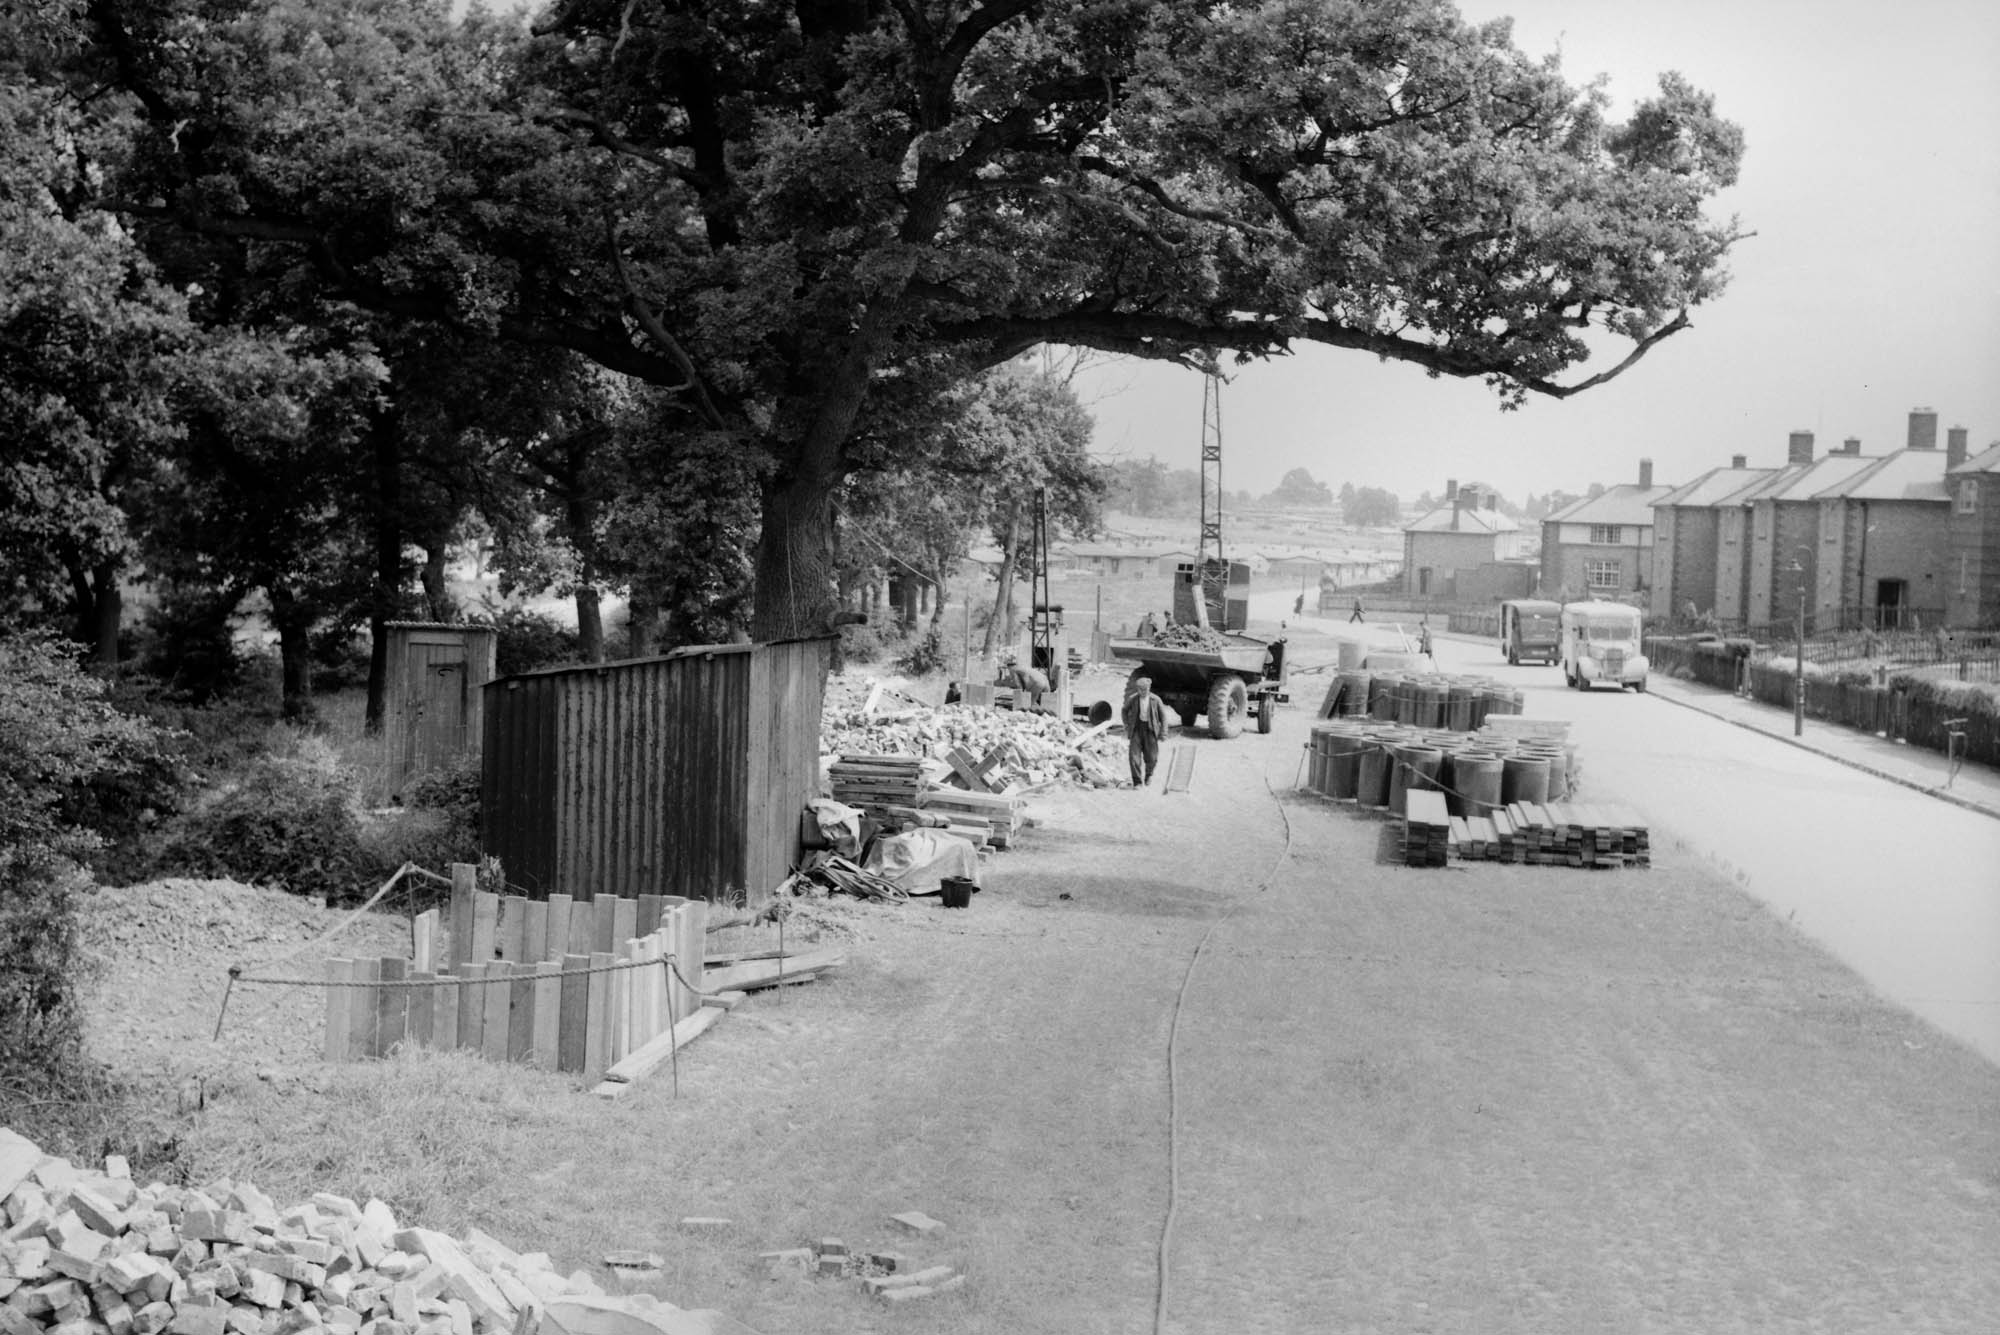 Hockley Farm Road, 1953 -